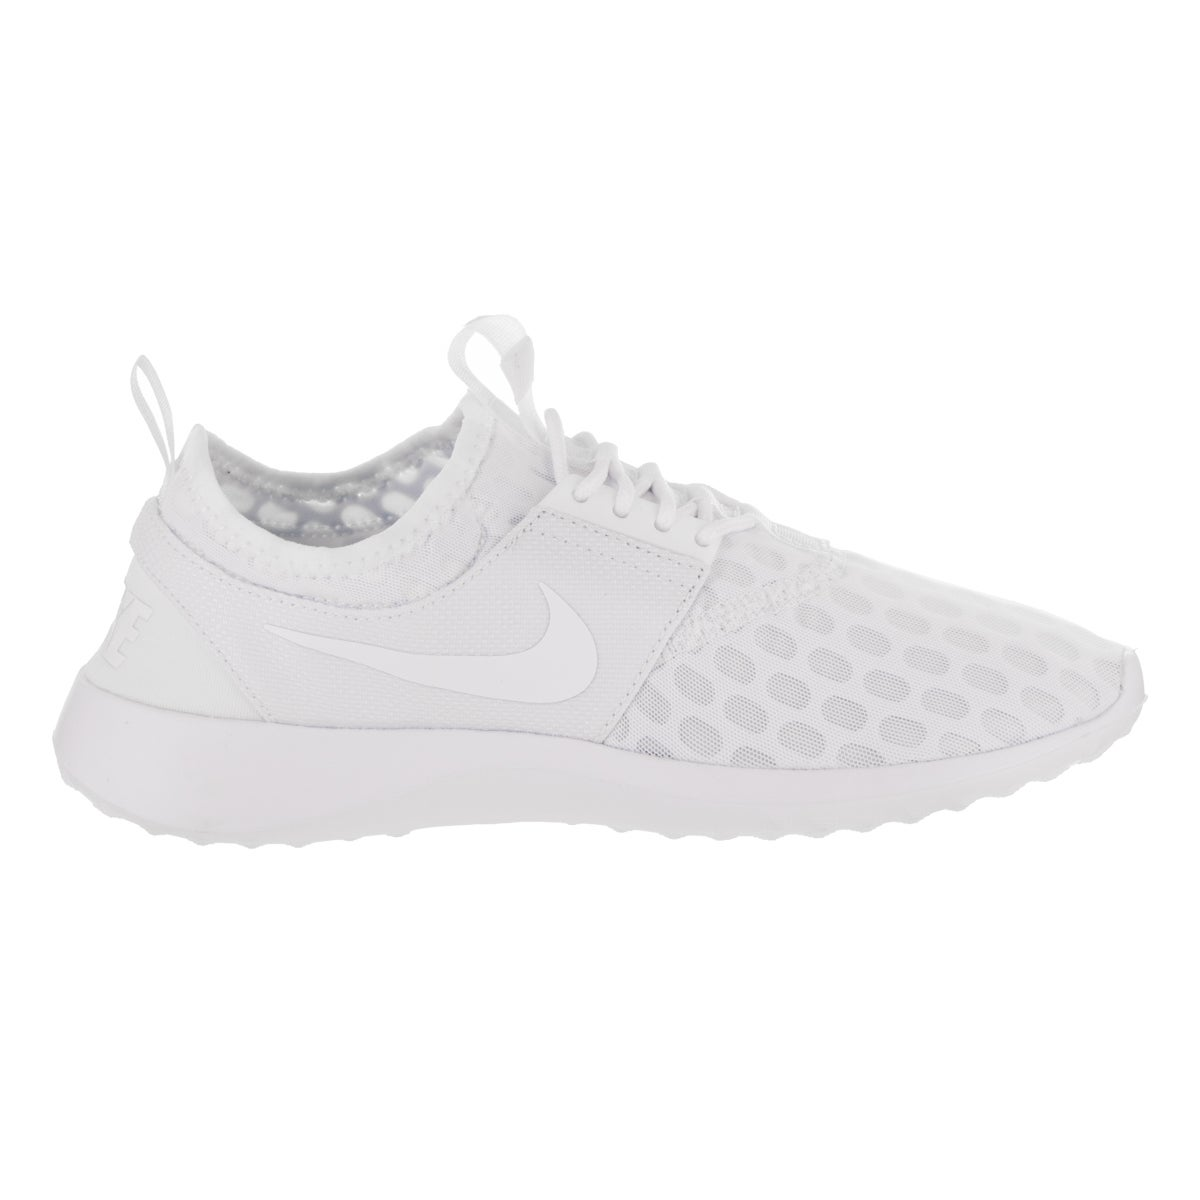 Nike Women's Juvenate White No-tongue Design Running Shoes - Free Shipping  Today - Overstock.com - 22050401